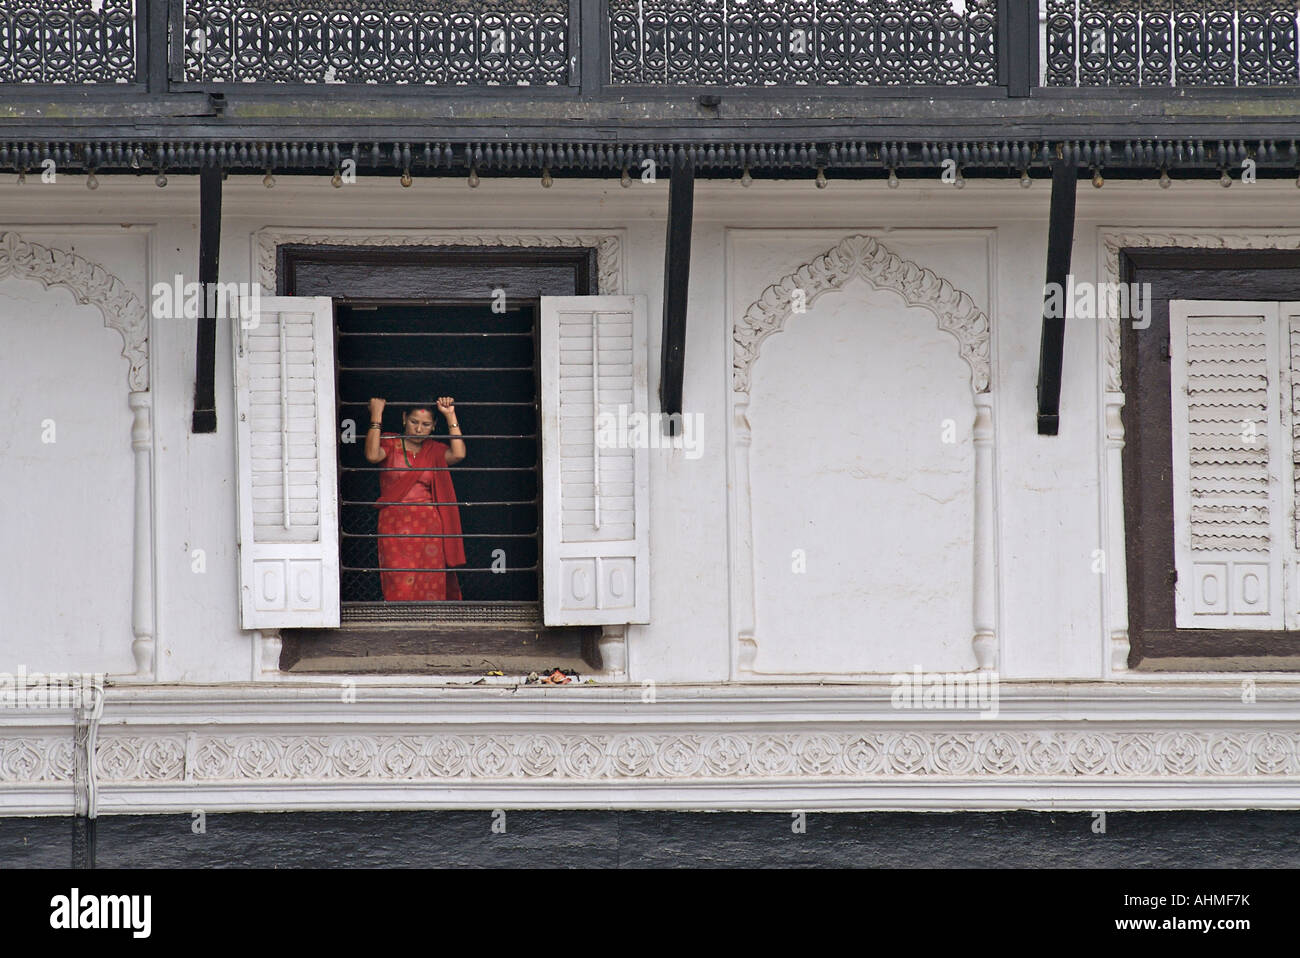 Woman in bright clothes standing in a window above Durbar Square Kathmandu Nepal - Stock Image